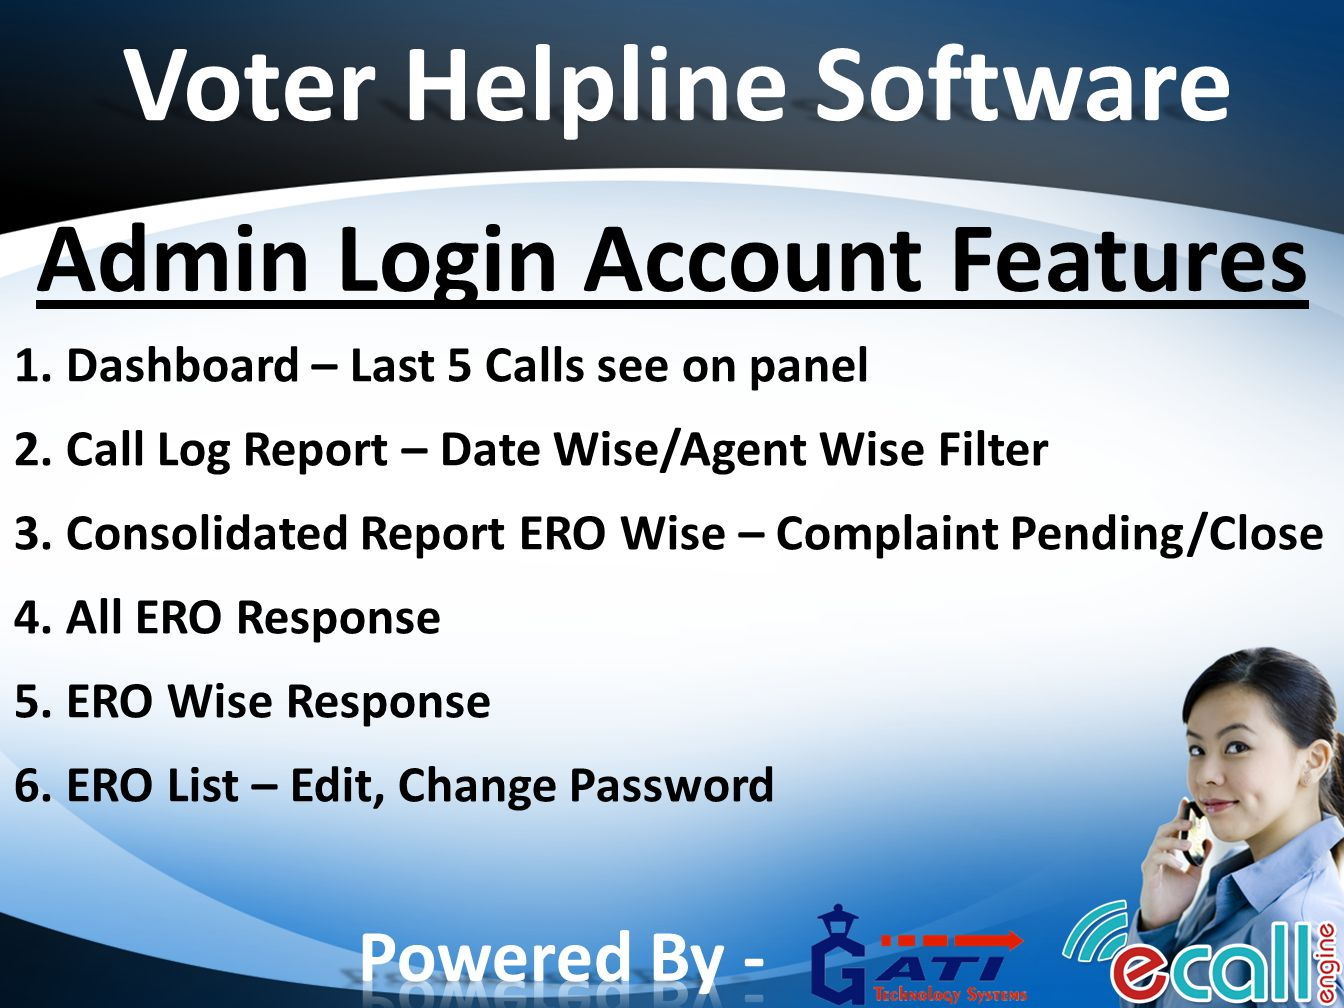 Voter Helpline Software Admin Login Account Features 1. Dashboard – Last 5 Calls see on panel 2. Call Log Report – Date Wise/Agent Wise Filter 3. Cons